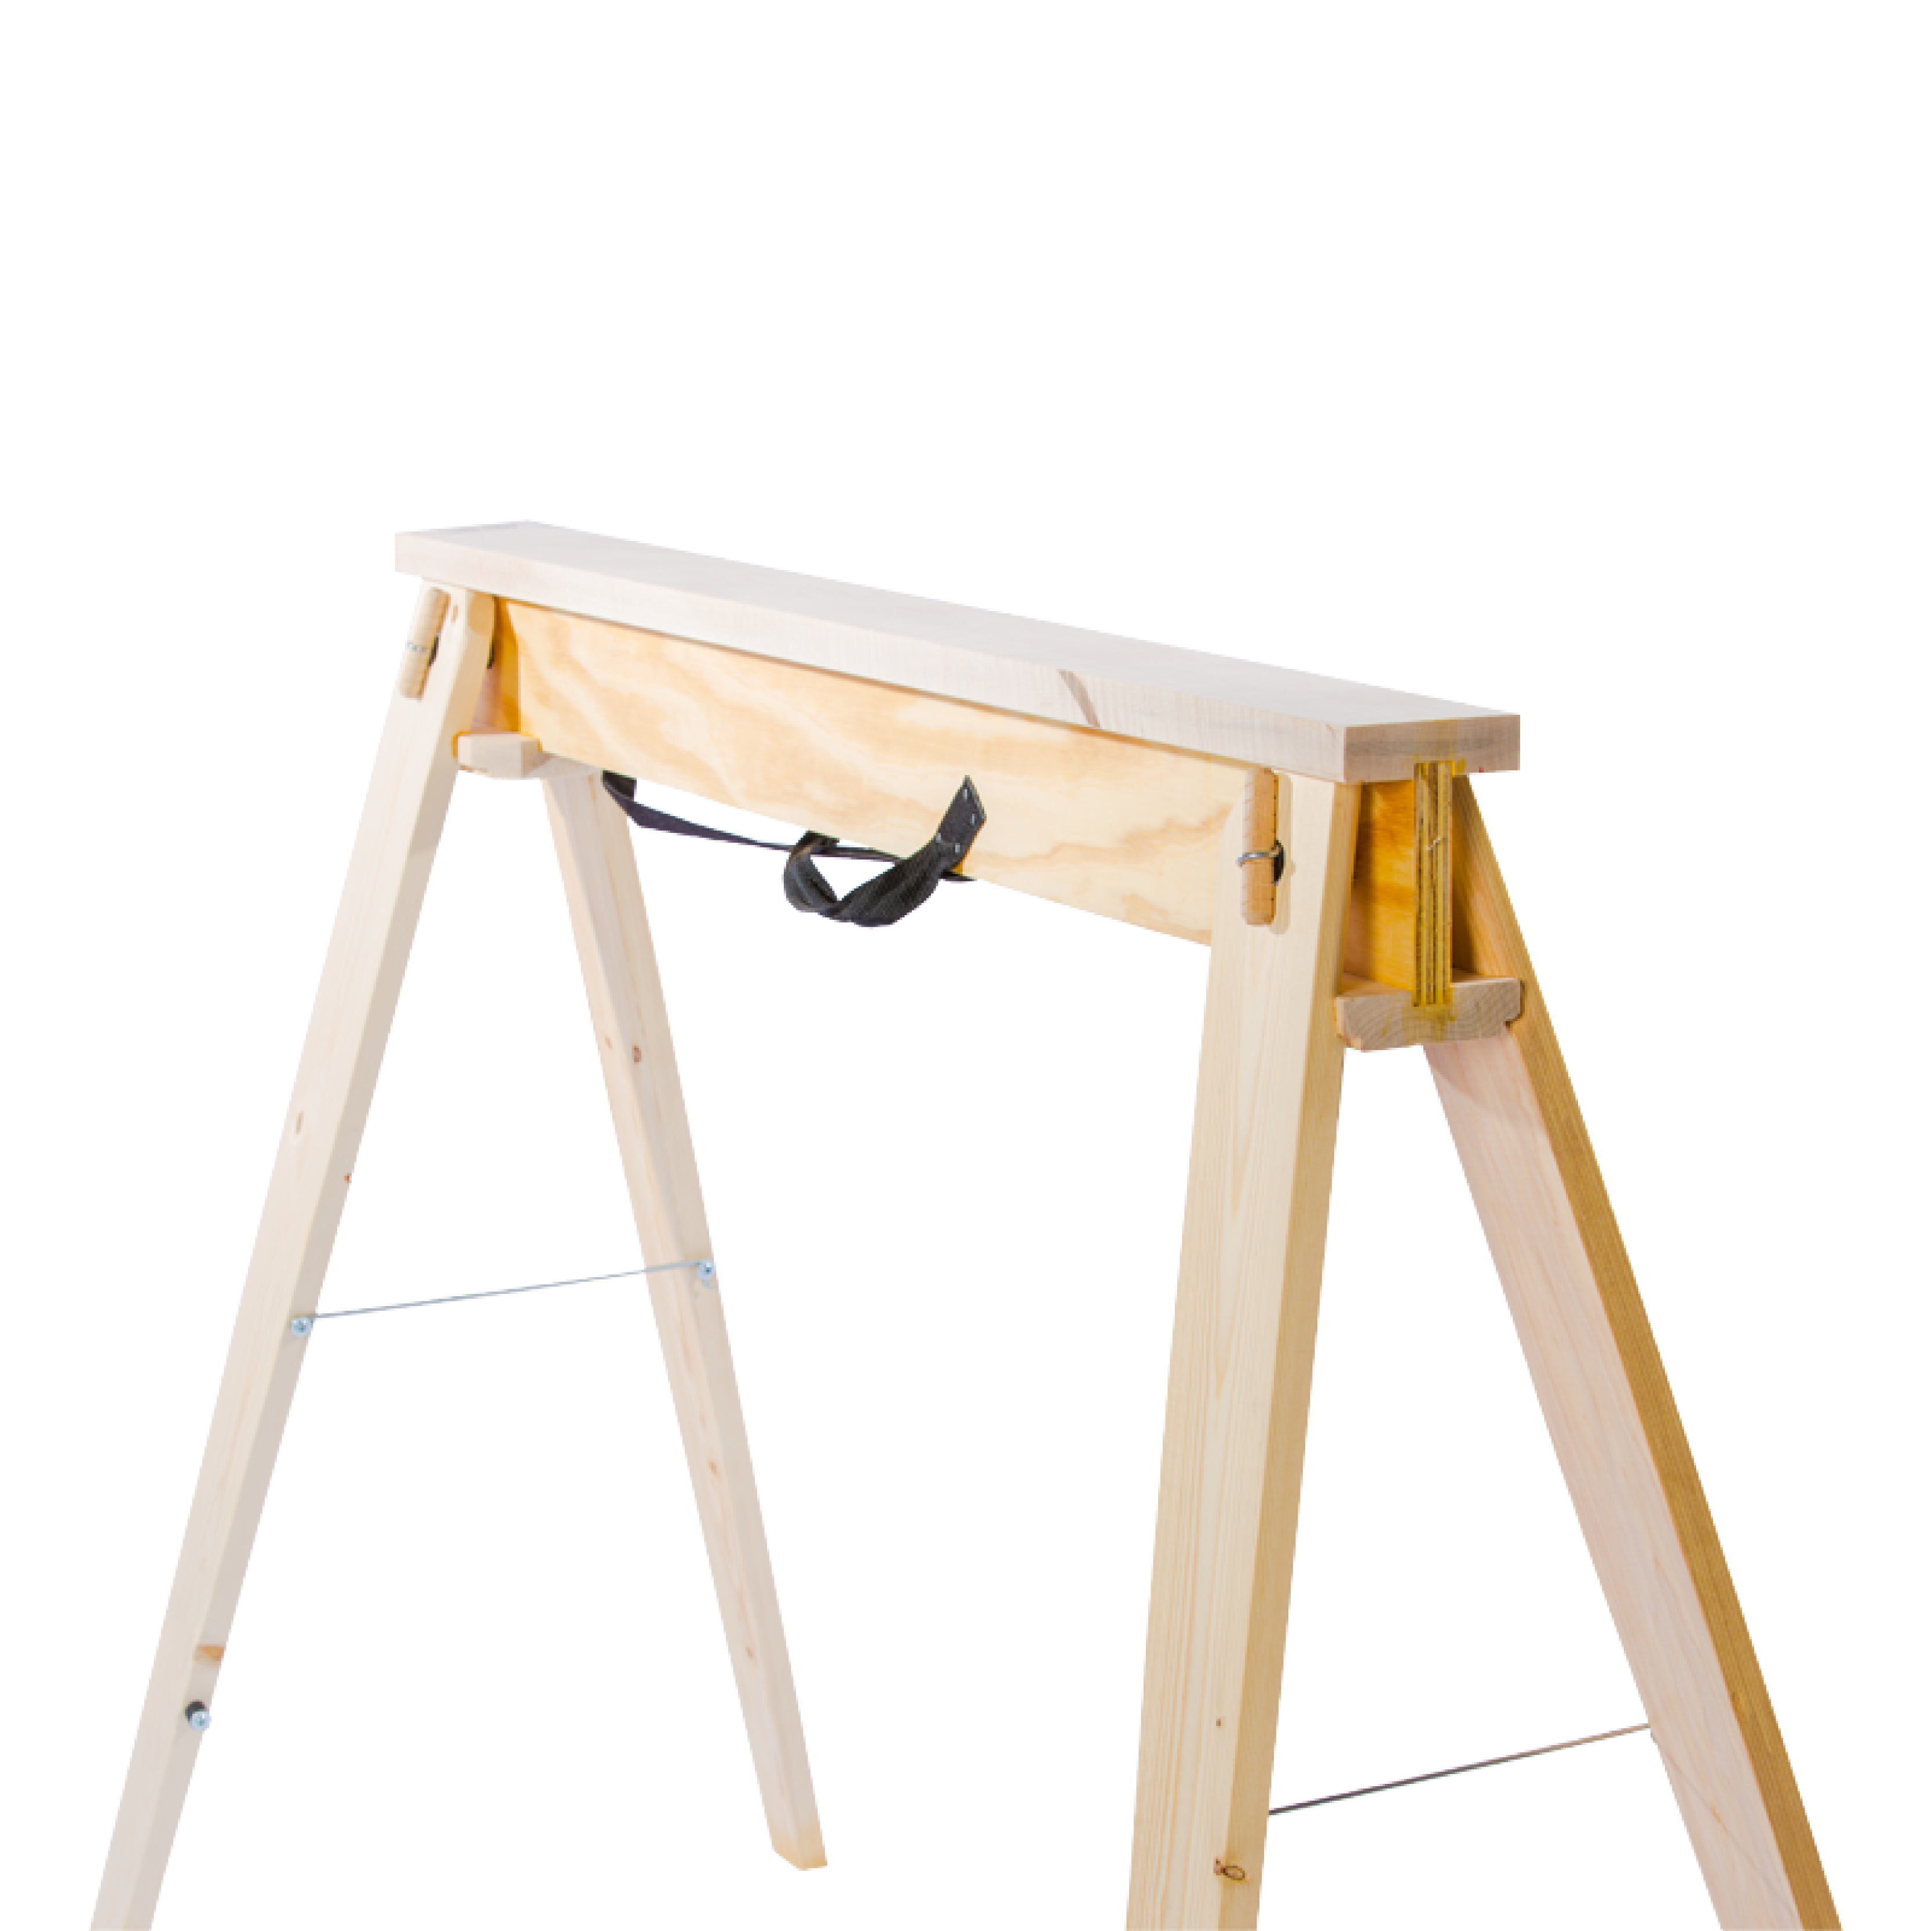 Front View of HideAHorse Folding Sawhorses